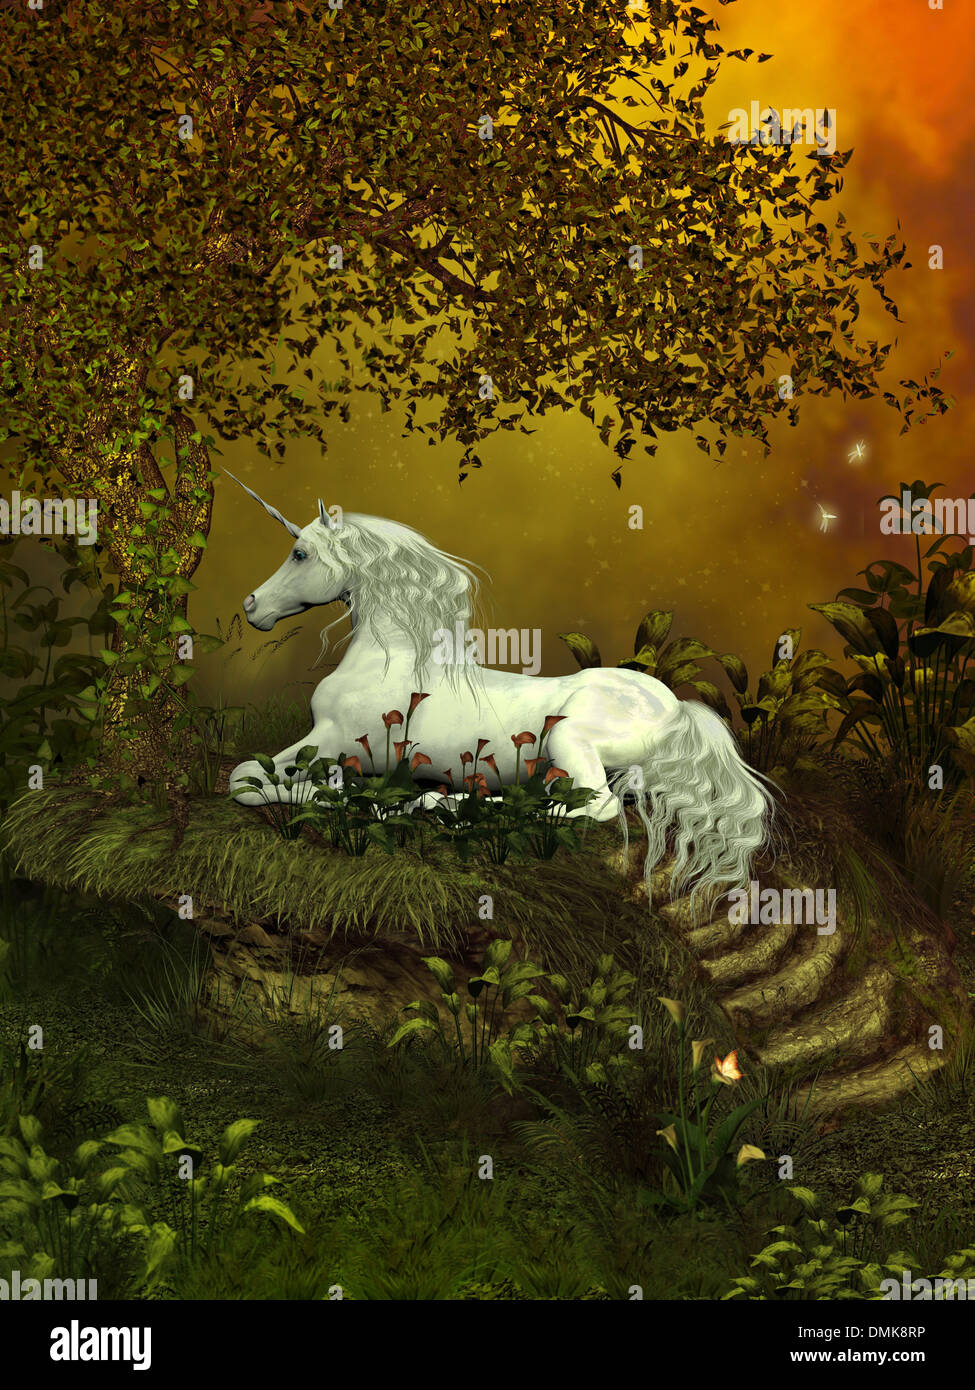 A beautiful white unicorn lays underneath a forest tree to rest among the flowers. - Stock Image